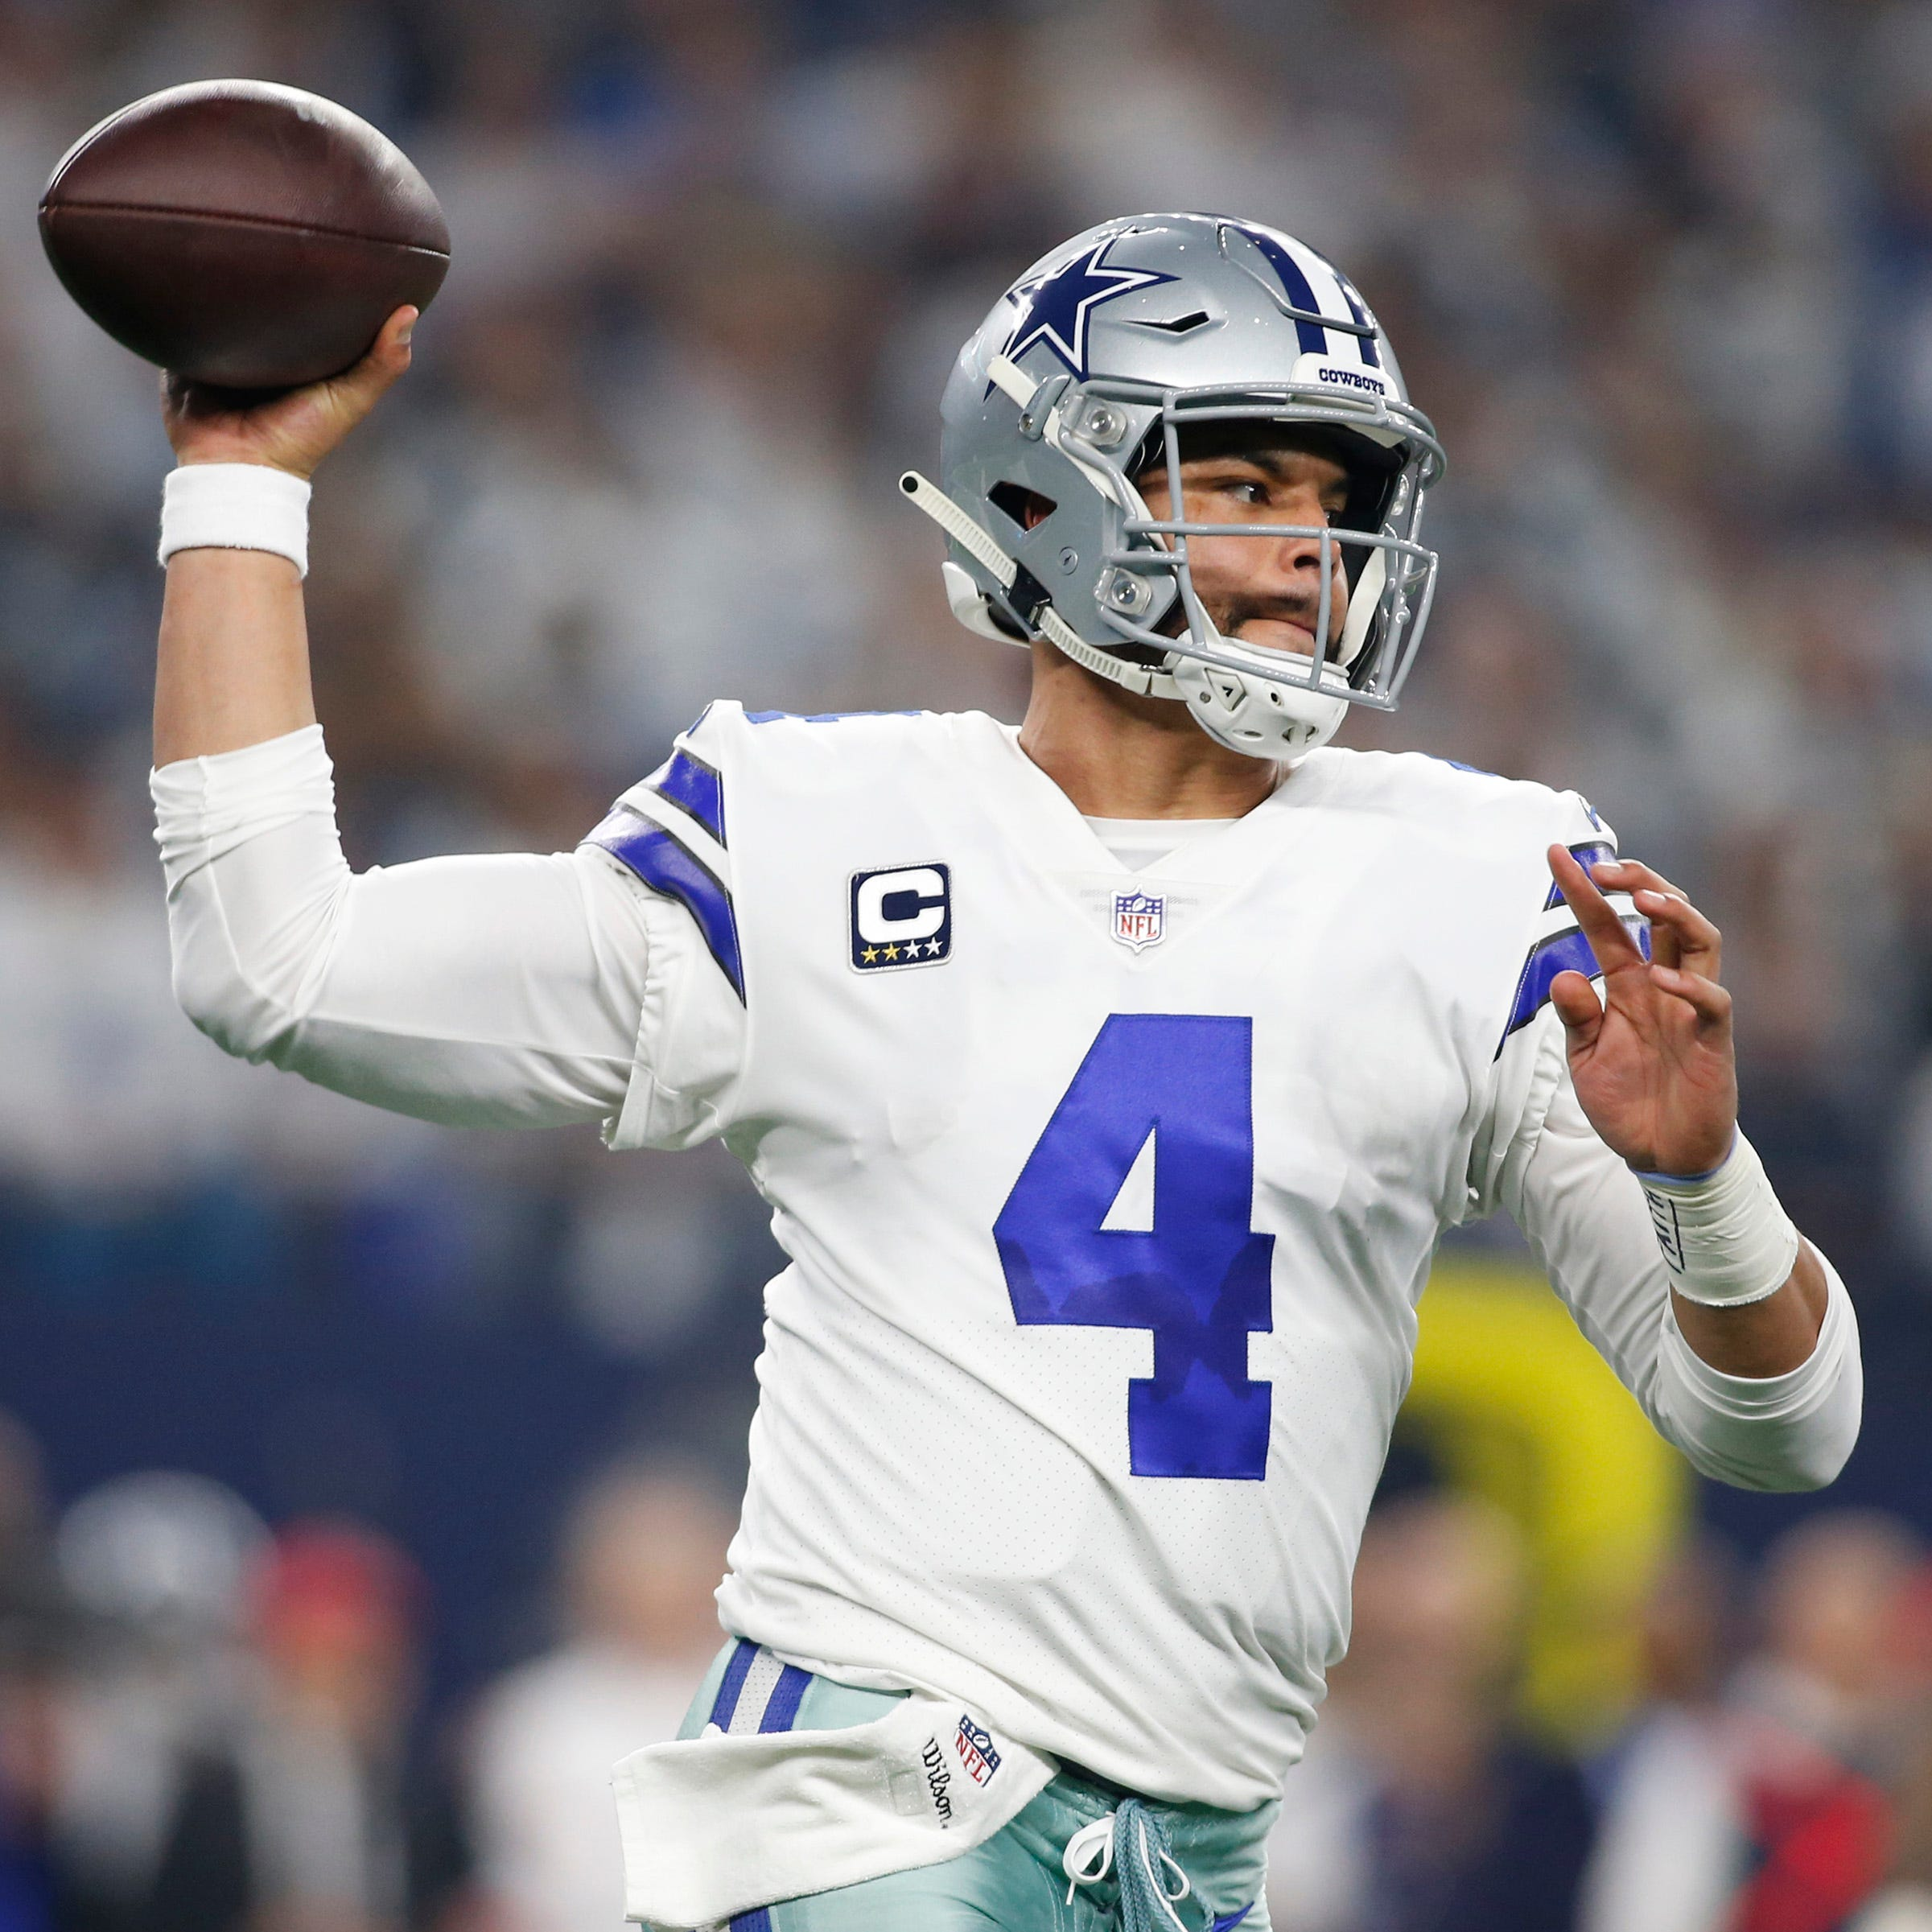 Dak Prescott has a chance to take the Cowboys to their first NFC title game since the 1995 season.